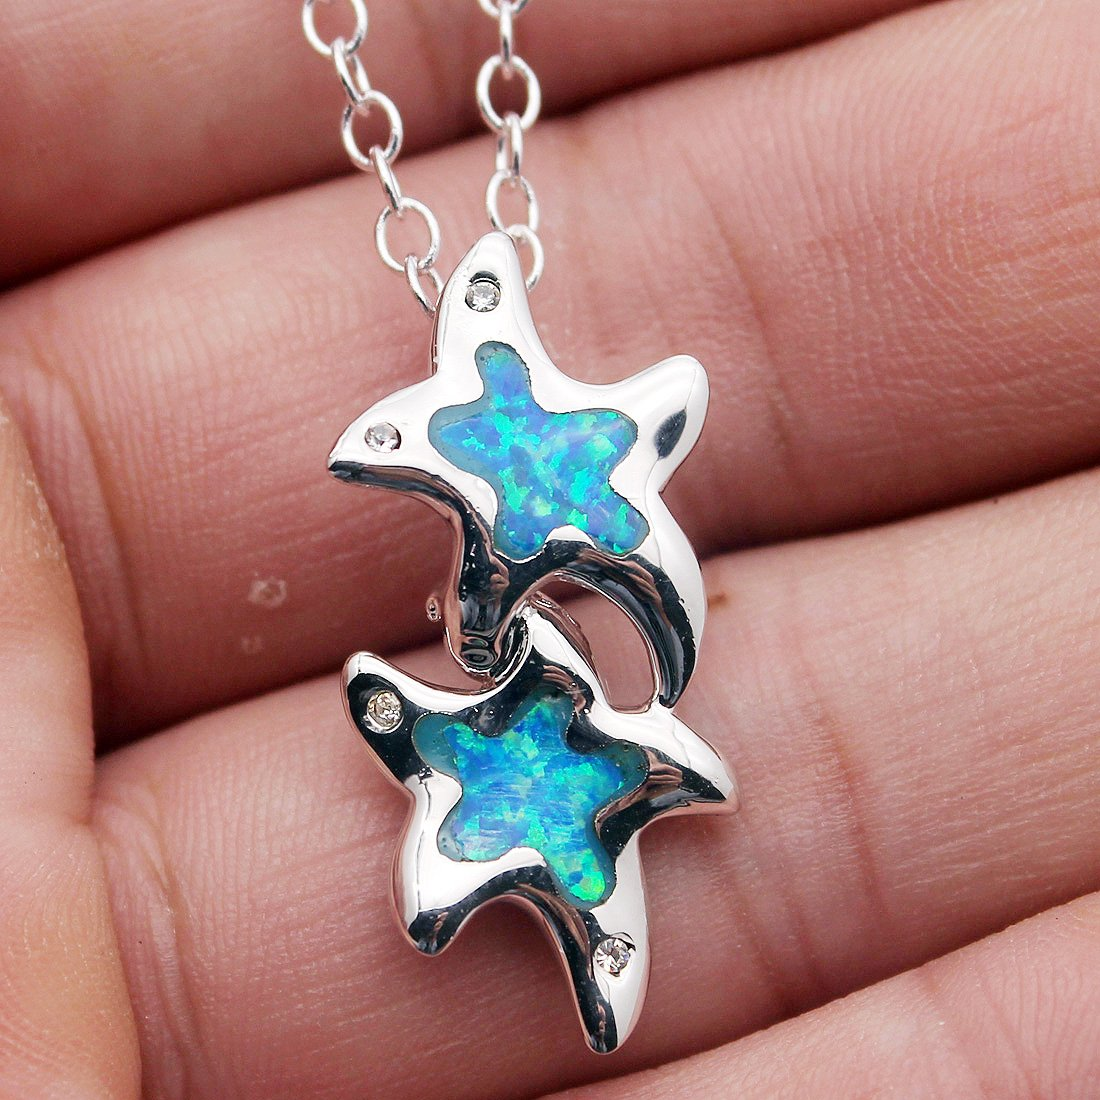 Hermosa Blue Australian Opal Necklace Pendant for Women Sterling Silver Fashion Jewelry Charms Gifts